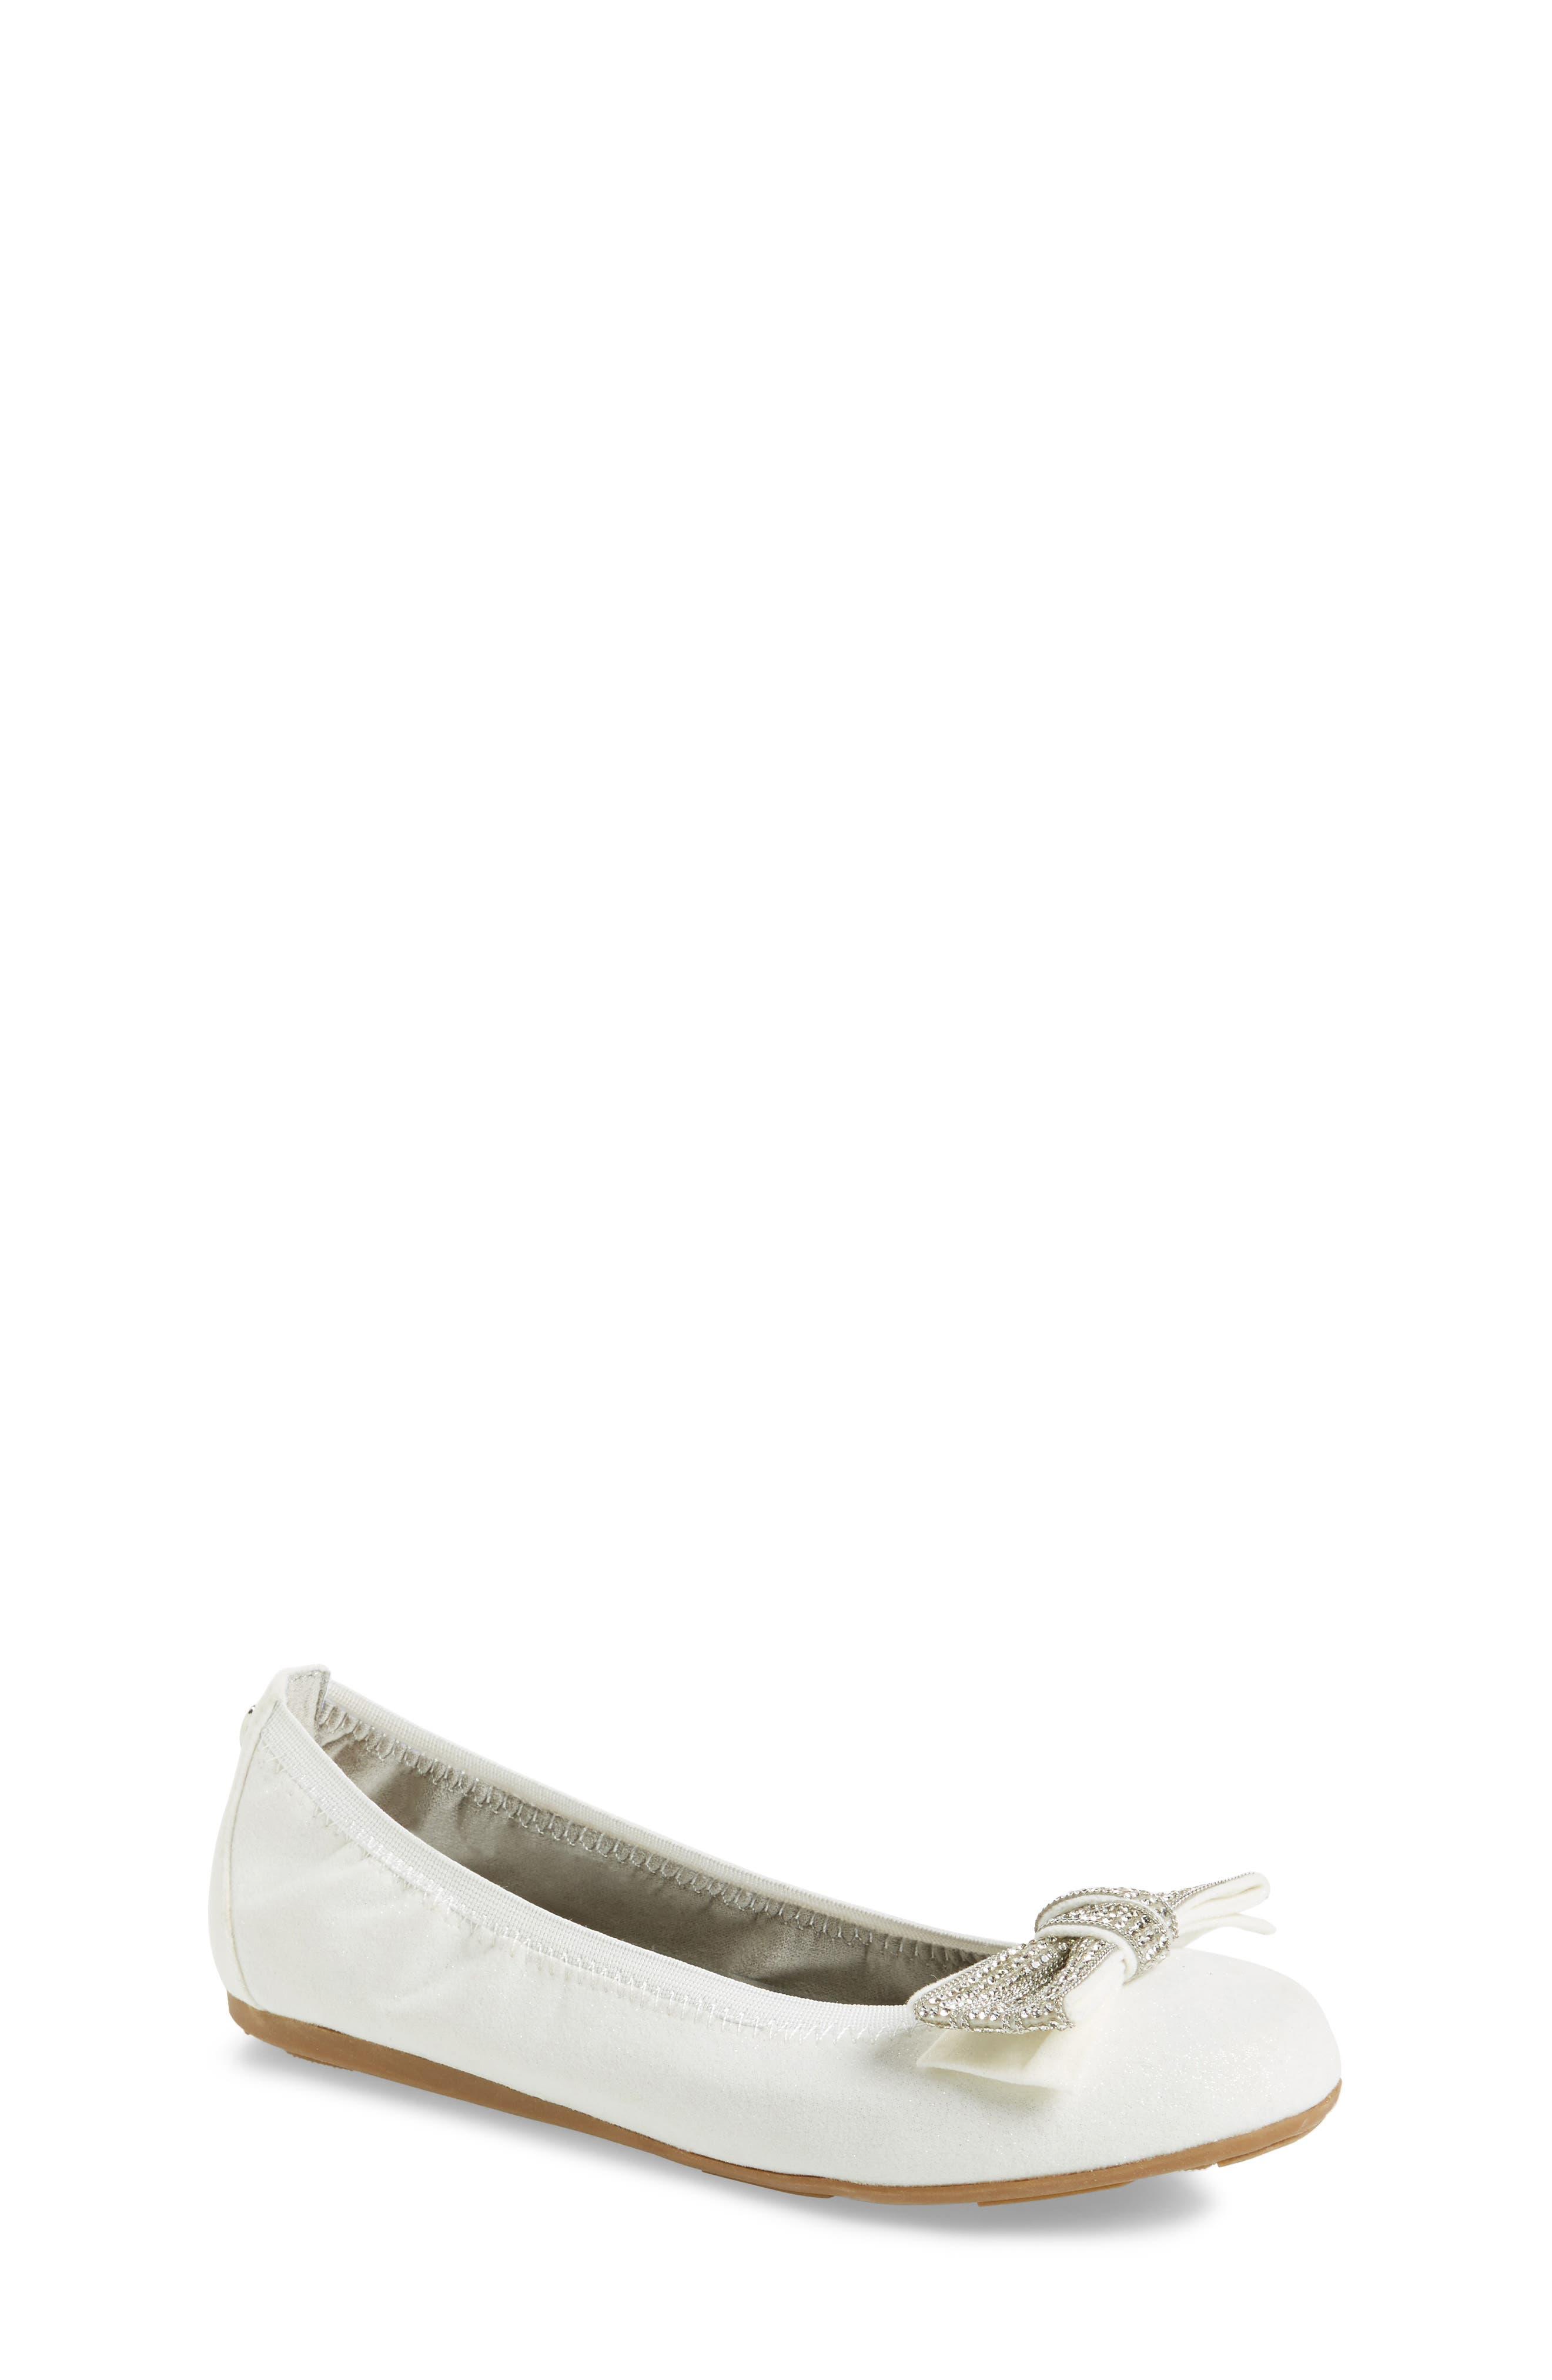 Stuart Weitzman Fannie Embellished Bow Ballet Flat (Toddler, Little Kid & Big Kid)